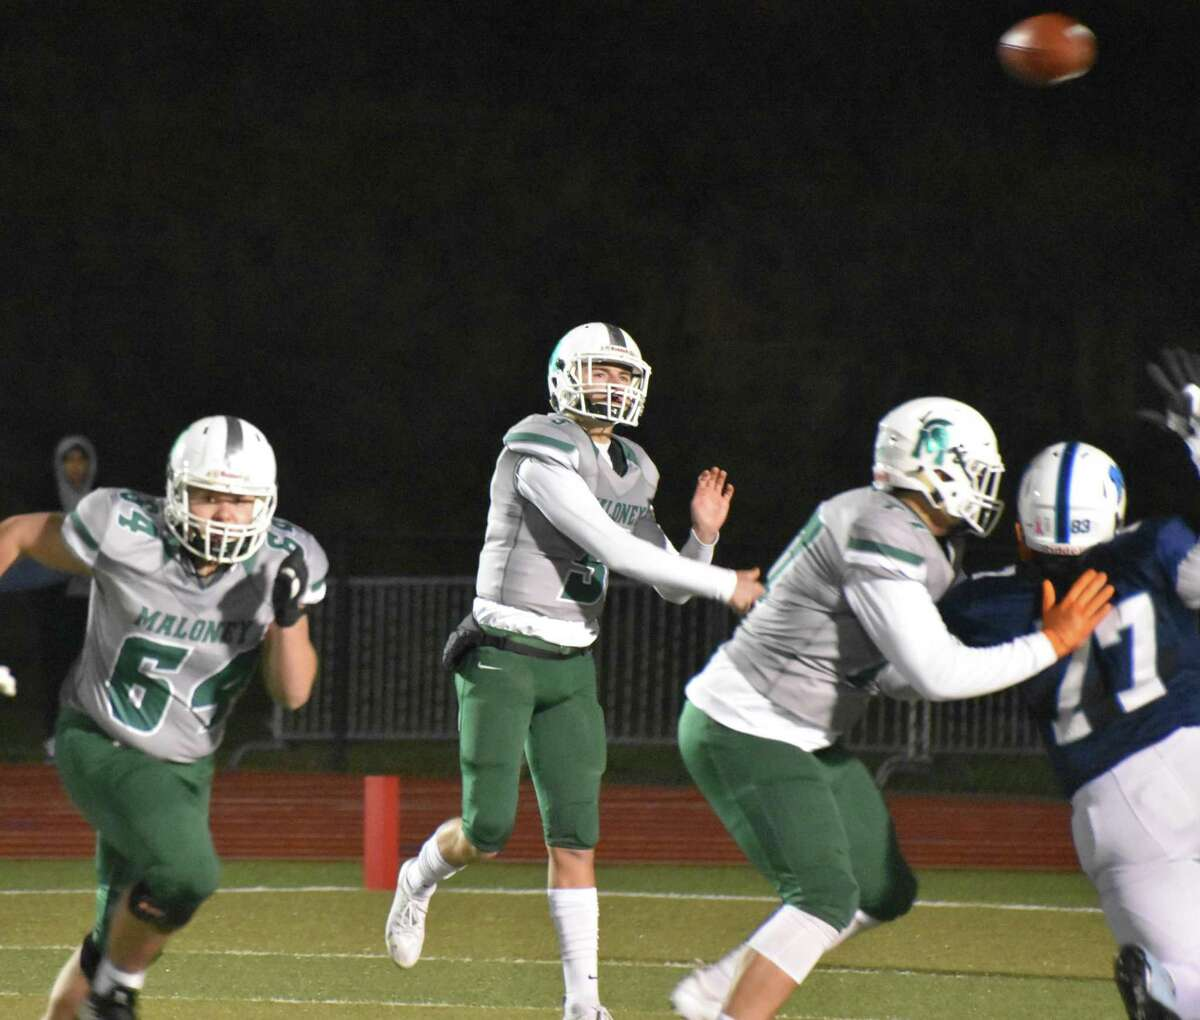 Maloney?'s Elliott Good throws a pass against Middletown in the Class L quarterfinals on Tuesday, November 27, 2018.